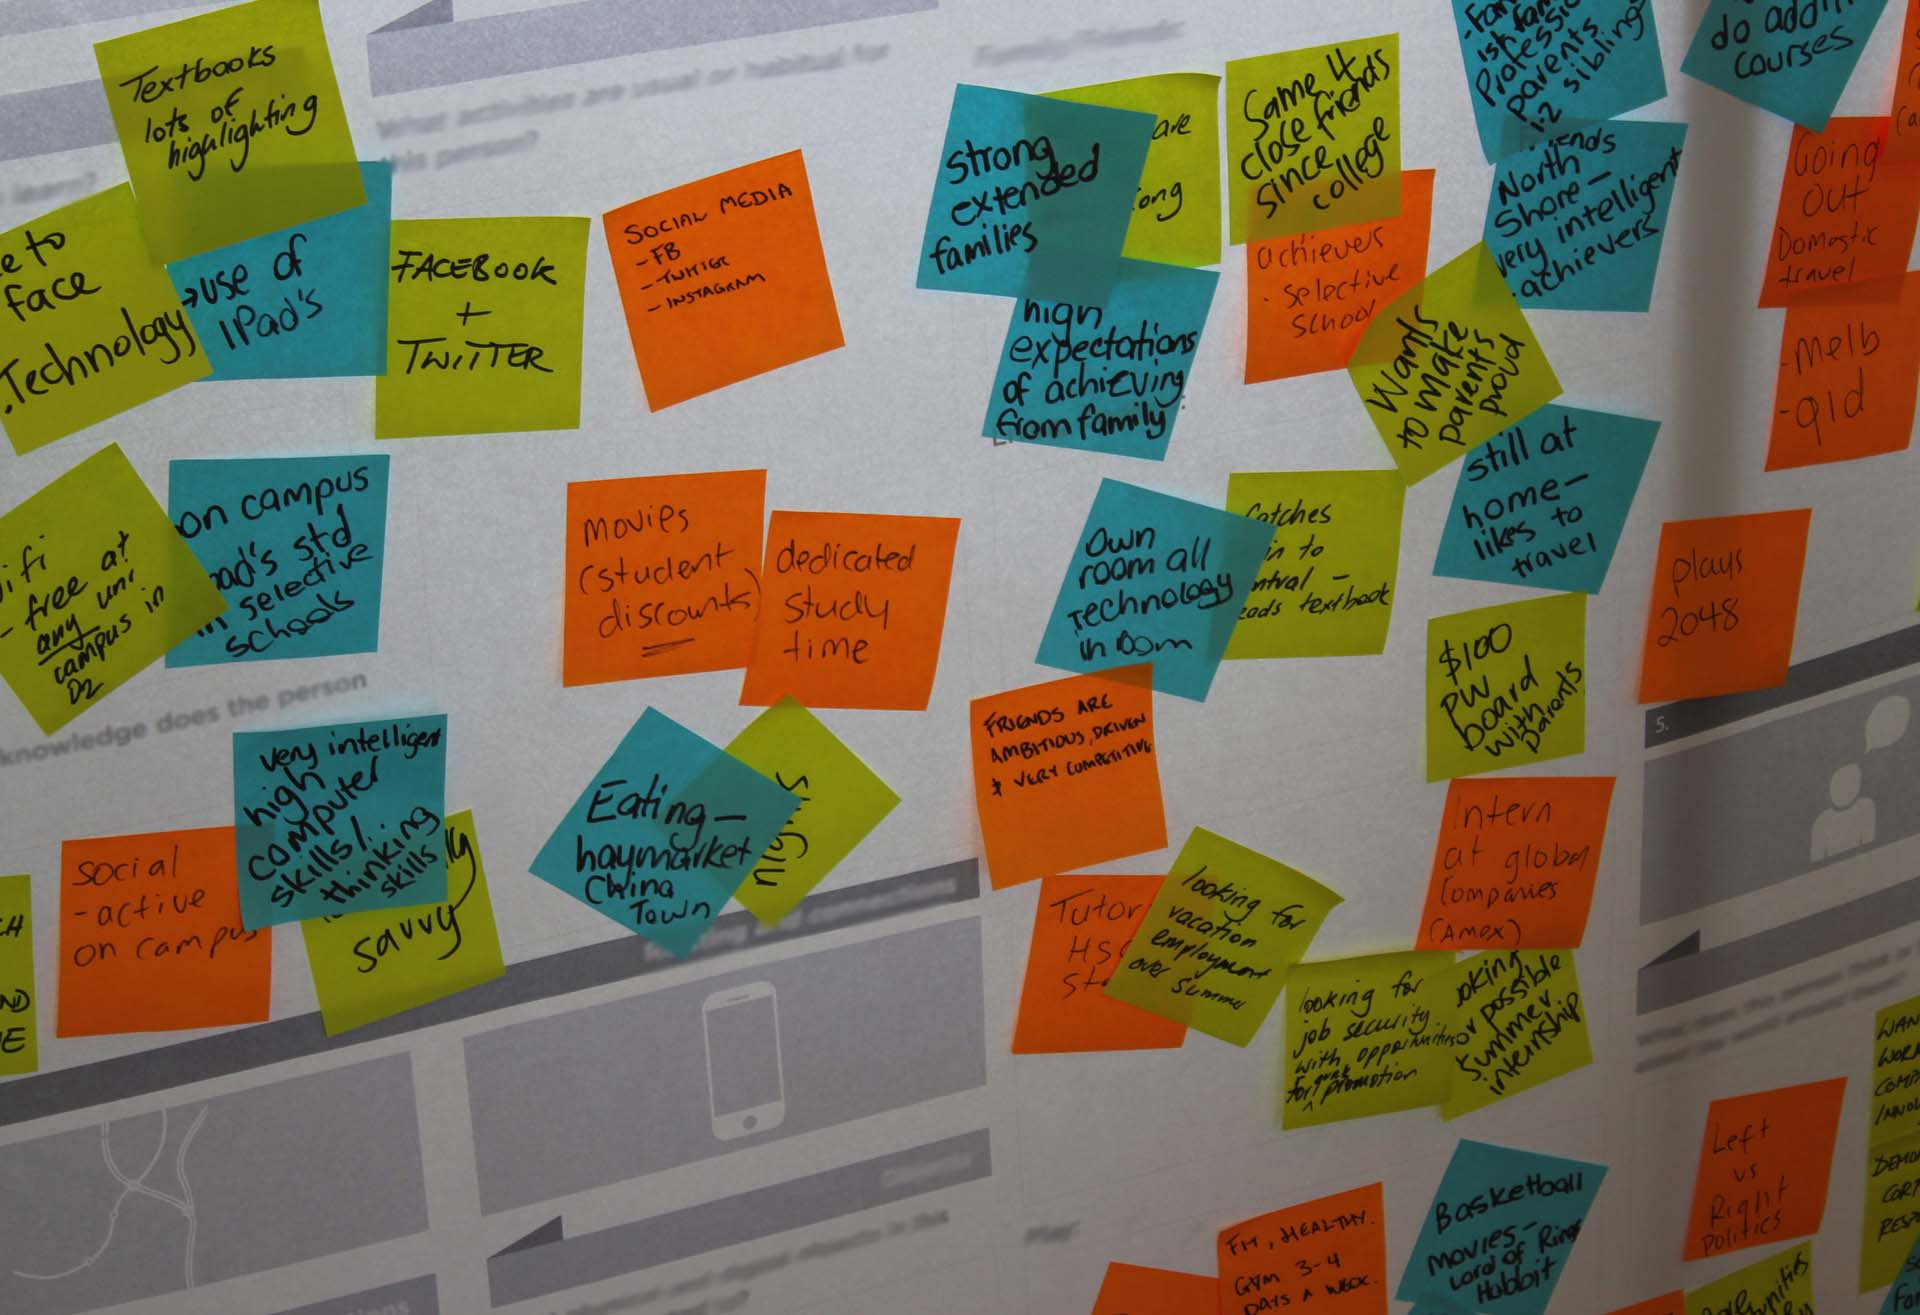 Colourful notes about customer experiences on a wall